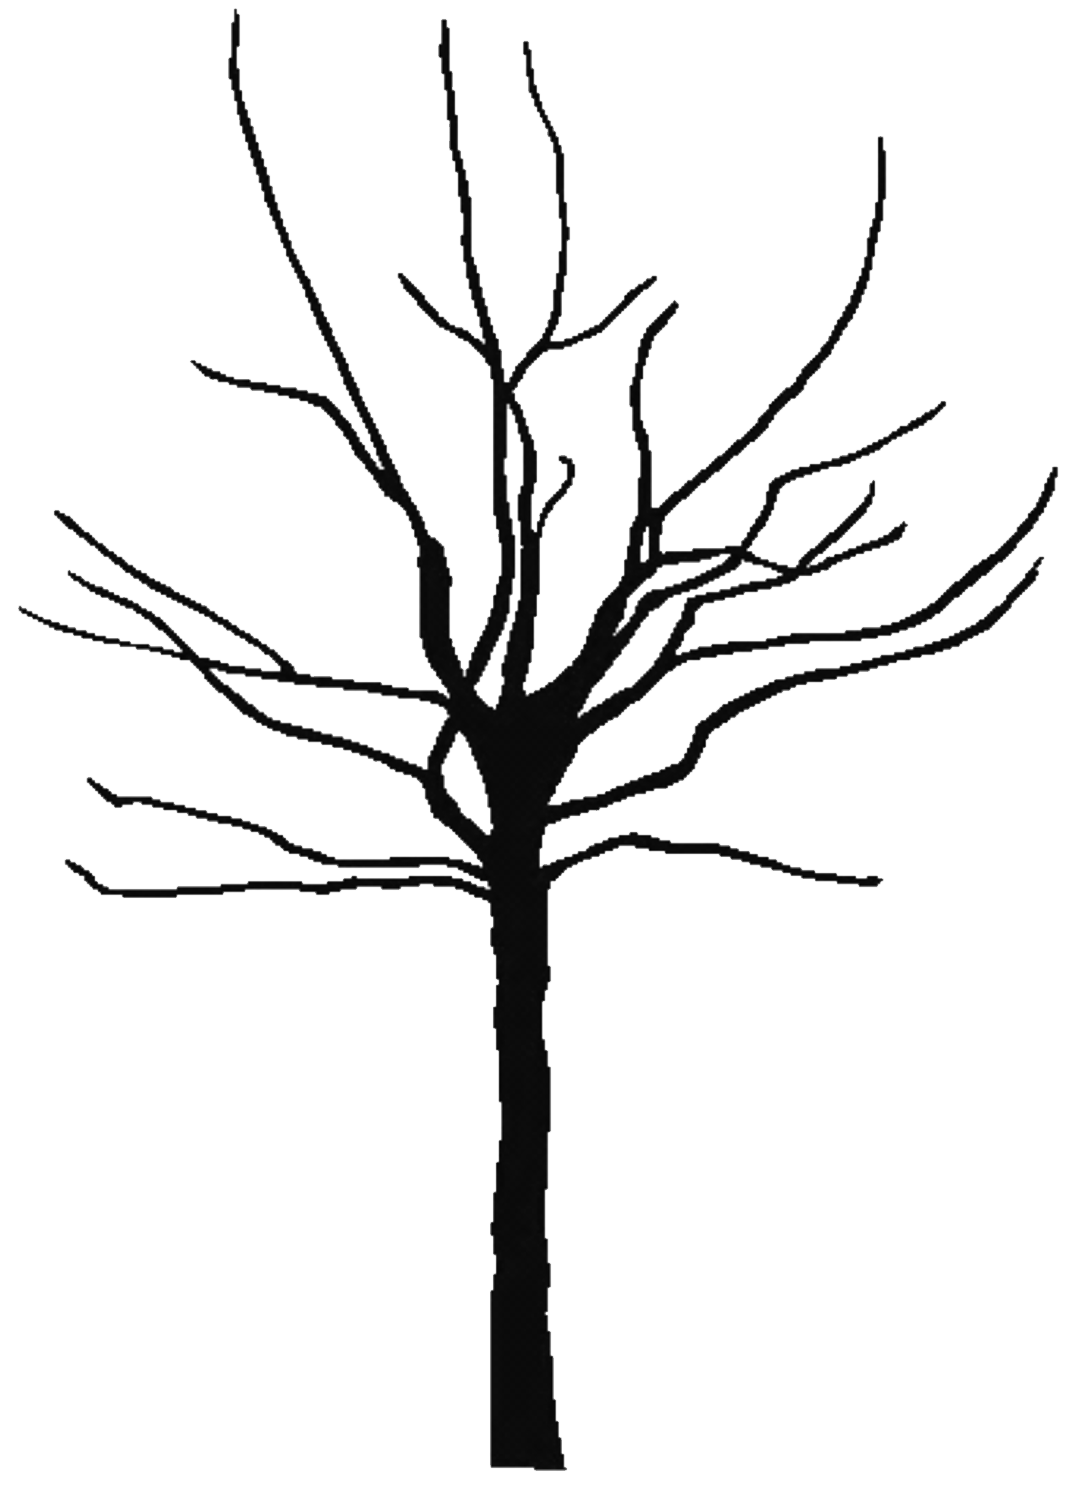 Bare branch png. Silhouette tree branches at